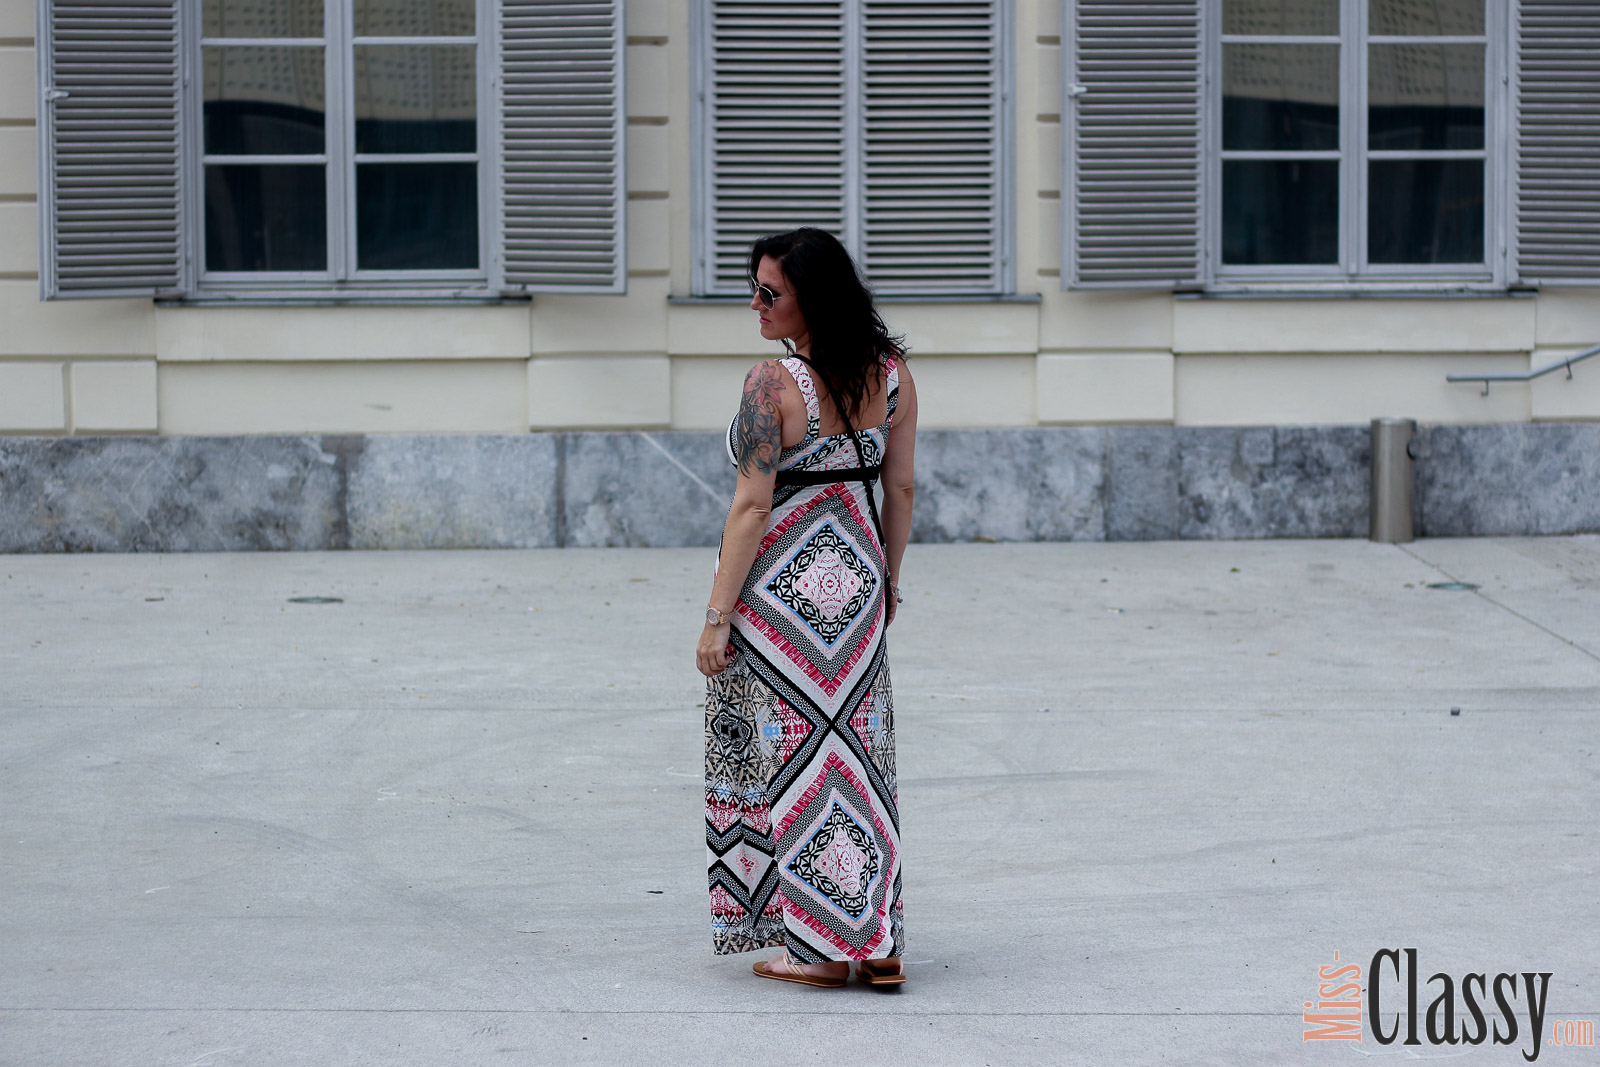 OUTFIT Sommerliches Maxikleid, Miss Classy, miss-classy.com, Fashionblog, Fashionblogger, Fashionblog Graz, Lifestyle Blog Graz, Lifestyleblog, Graz, Steiermark, Österreich, classy, beclassy, classy Fashion, Outfit, Style, Fashion, Mode, OOTD, Lippenstift MAC, MAC Cosmetics, Flip Flop, Pilotenbrille, Sonnenbrille, Clutch, Michael Kors. Comma, Maxikleid, Sommerkleid, Sommerliches Maxikleid, Maxikleid von comma mit dekorativem Allover-Print, Blogparade, 7 Girls 7 Styles